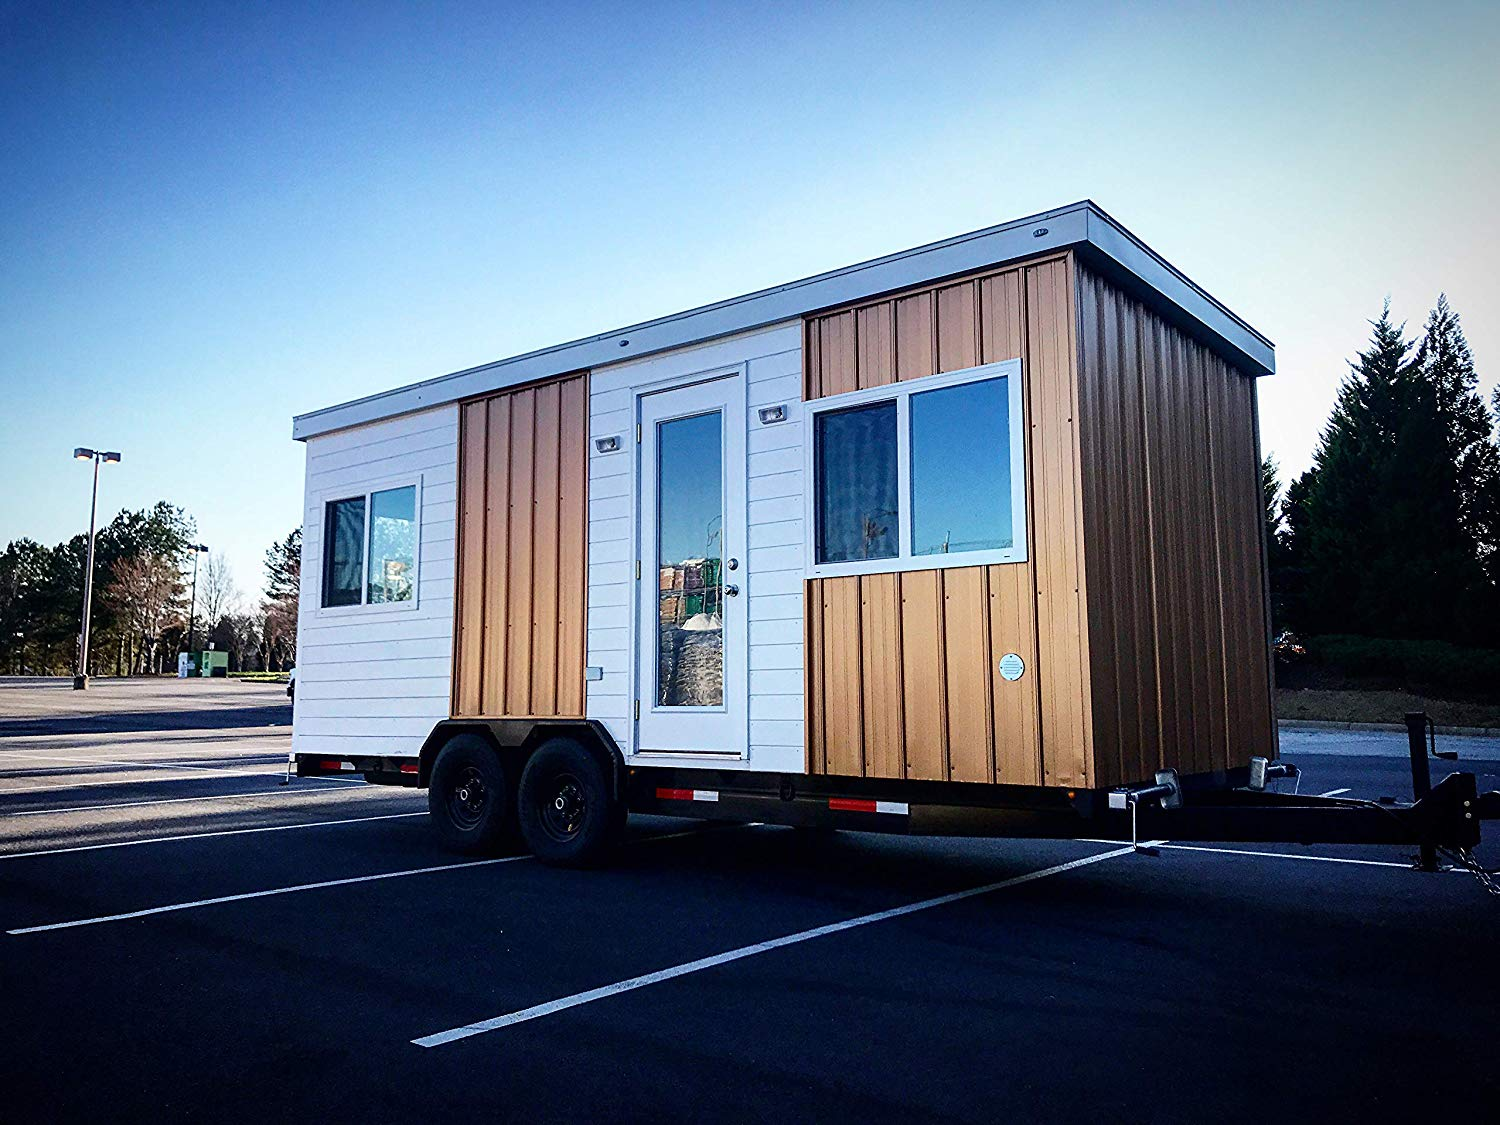 20-Foot Tiny House You Can Order on Amazon